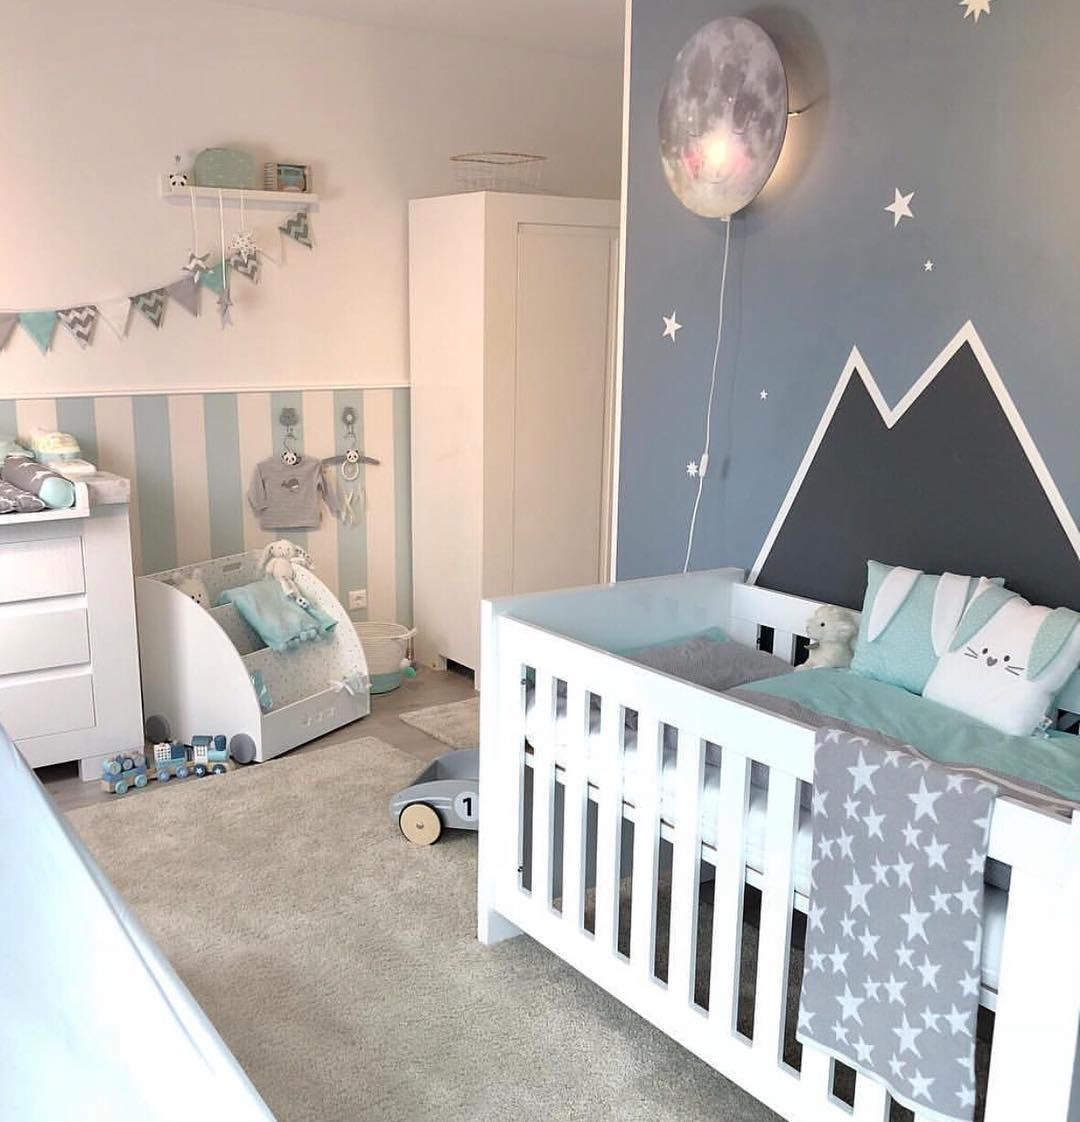 Babyzimmer in mint & grau | Kinderzimmer Inspiration ♥ in 2019 ...